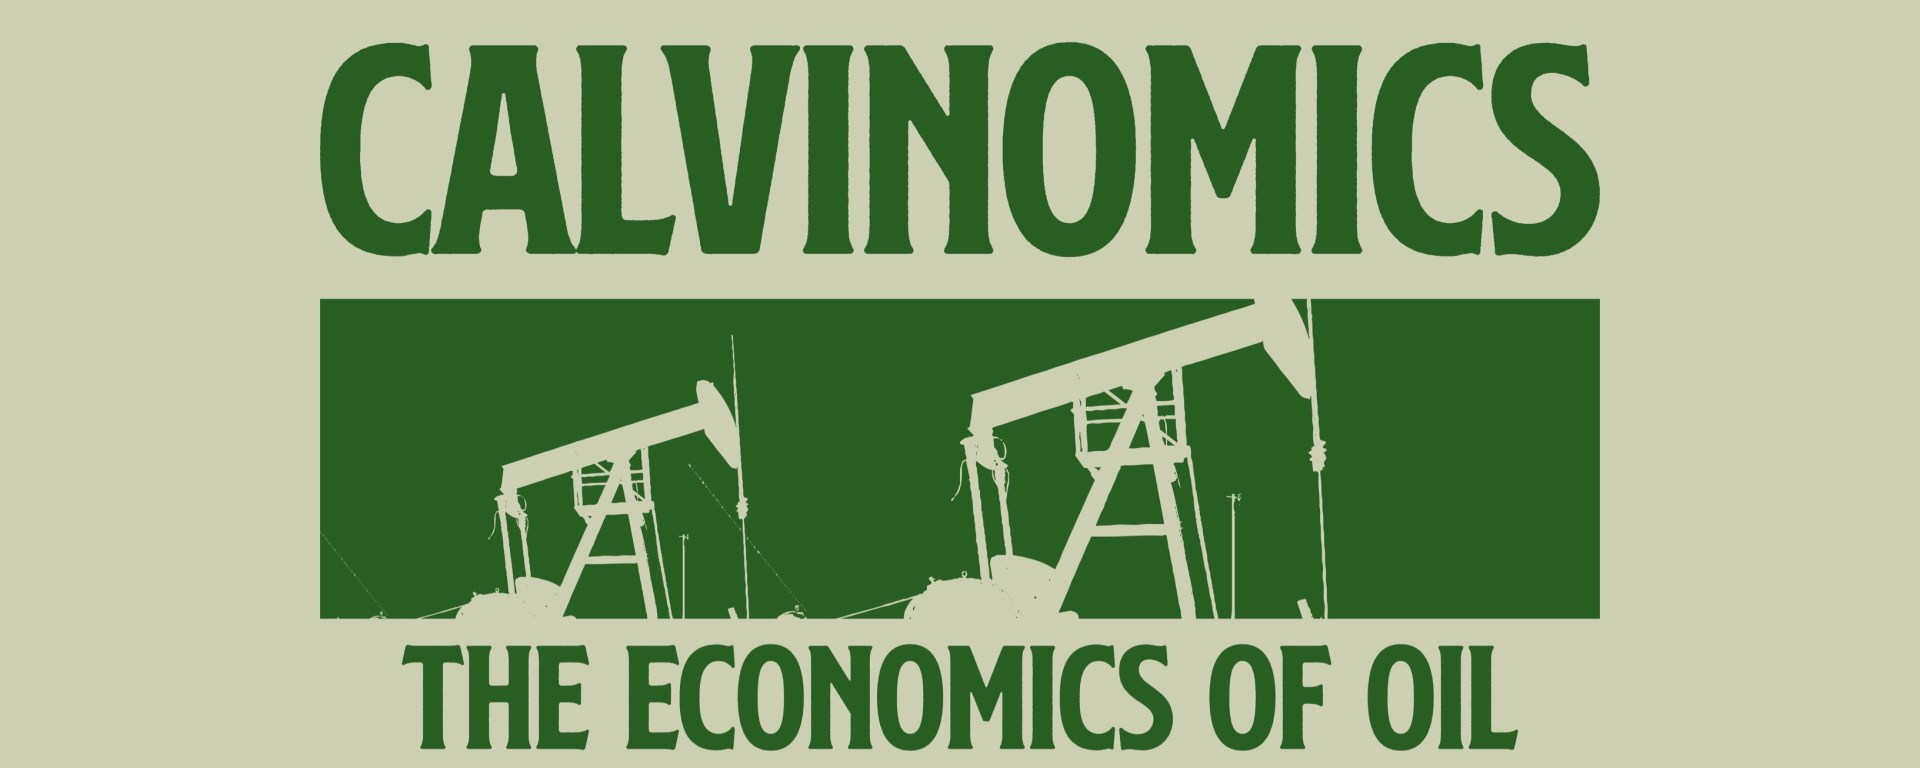 green text on light green background saying Calvinomics the economics of oil with graphic of oil pumps